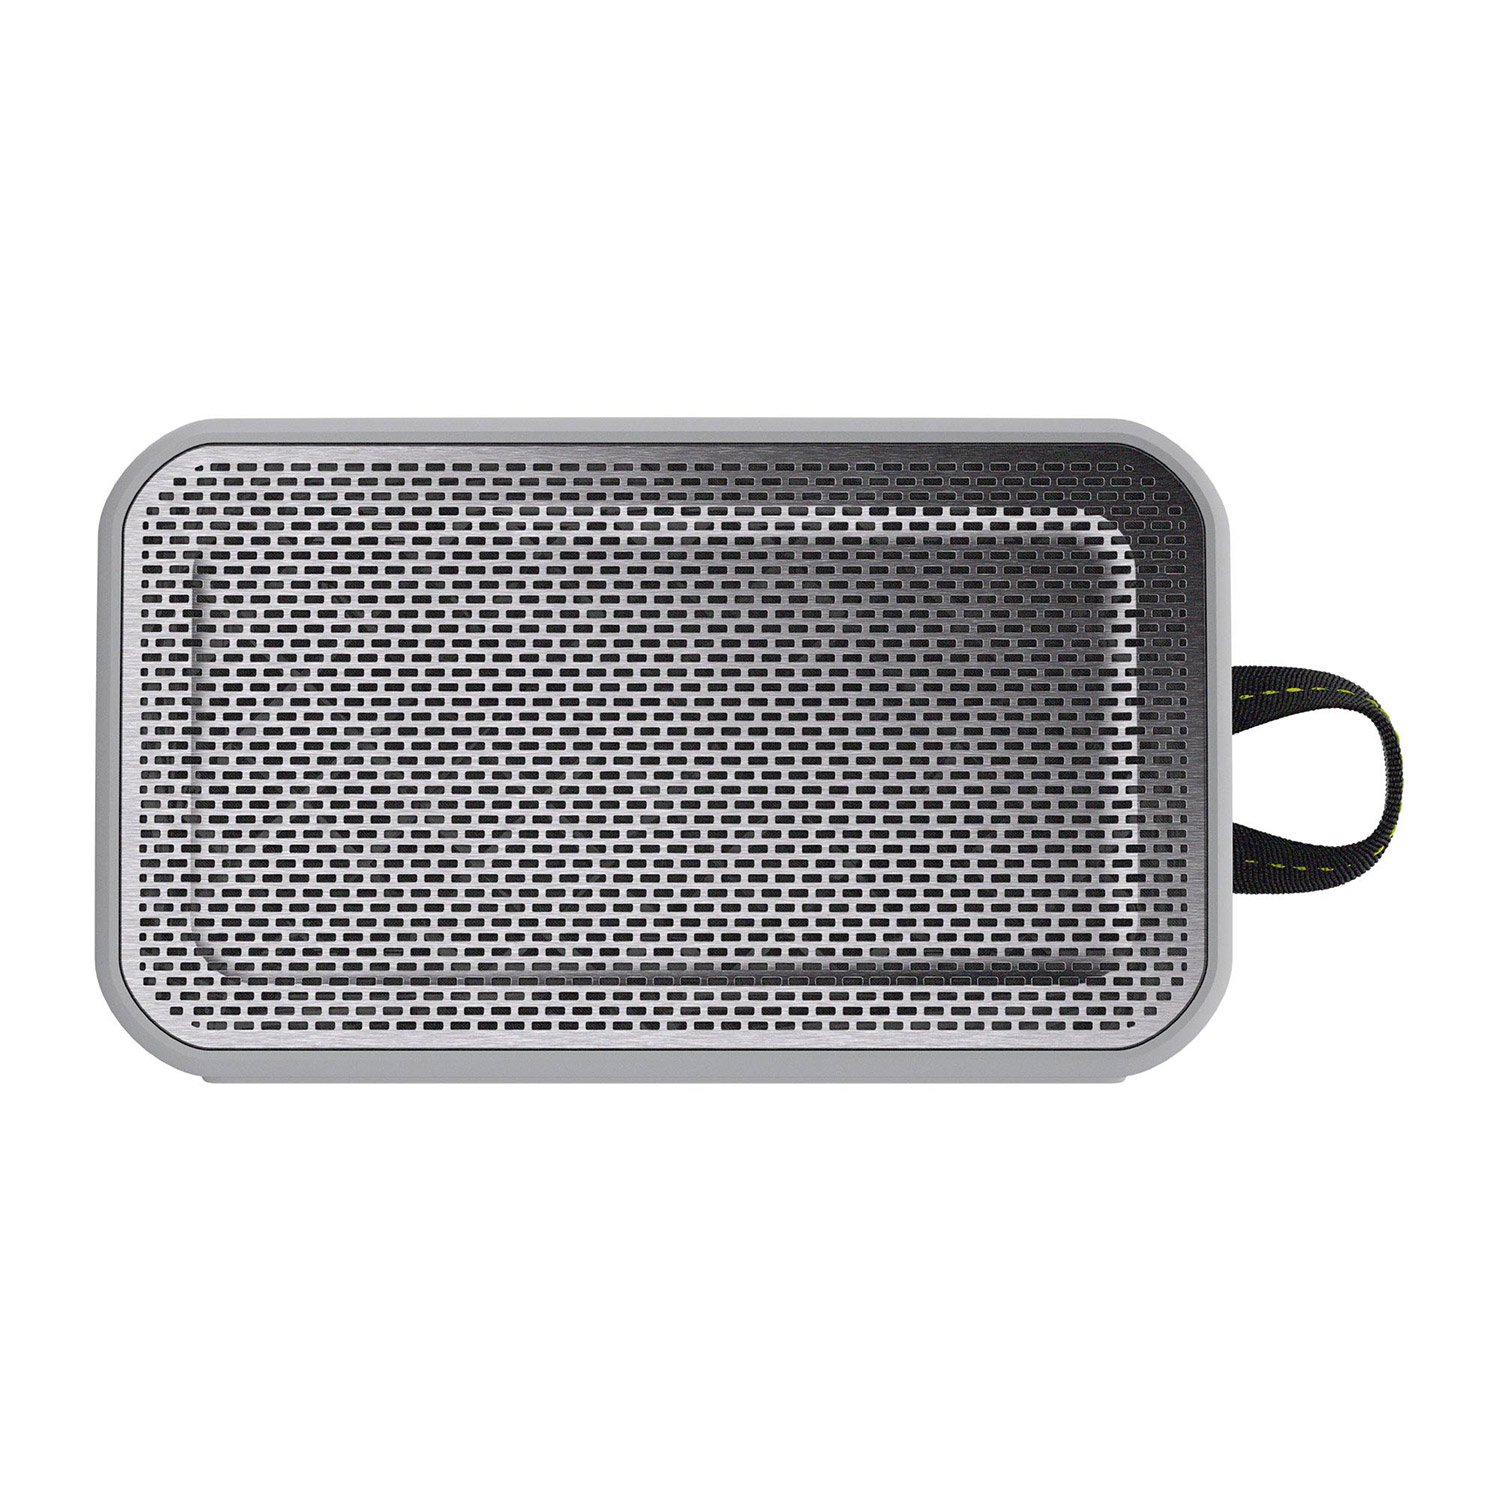 Skullcandy Barricade XL Bluetooth Wireless Portable Speaker, Waterproof and Buoyant, Impact Resistant, 10-Hour Battery Life and 33 Foot Wireless Range, Gray/Hot Lime by Skullcandy